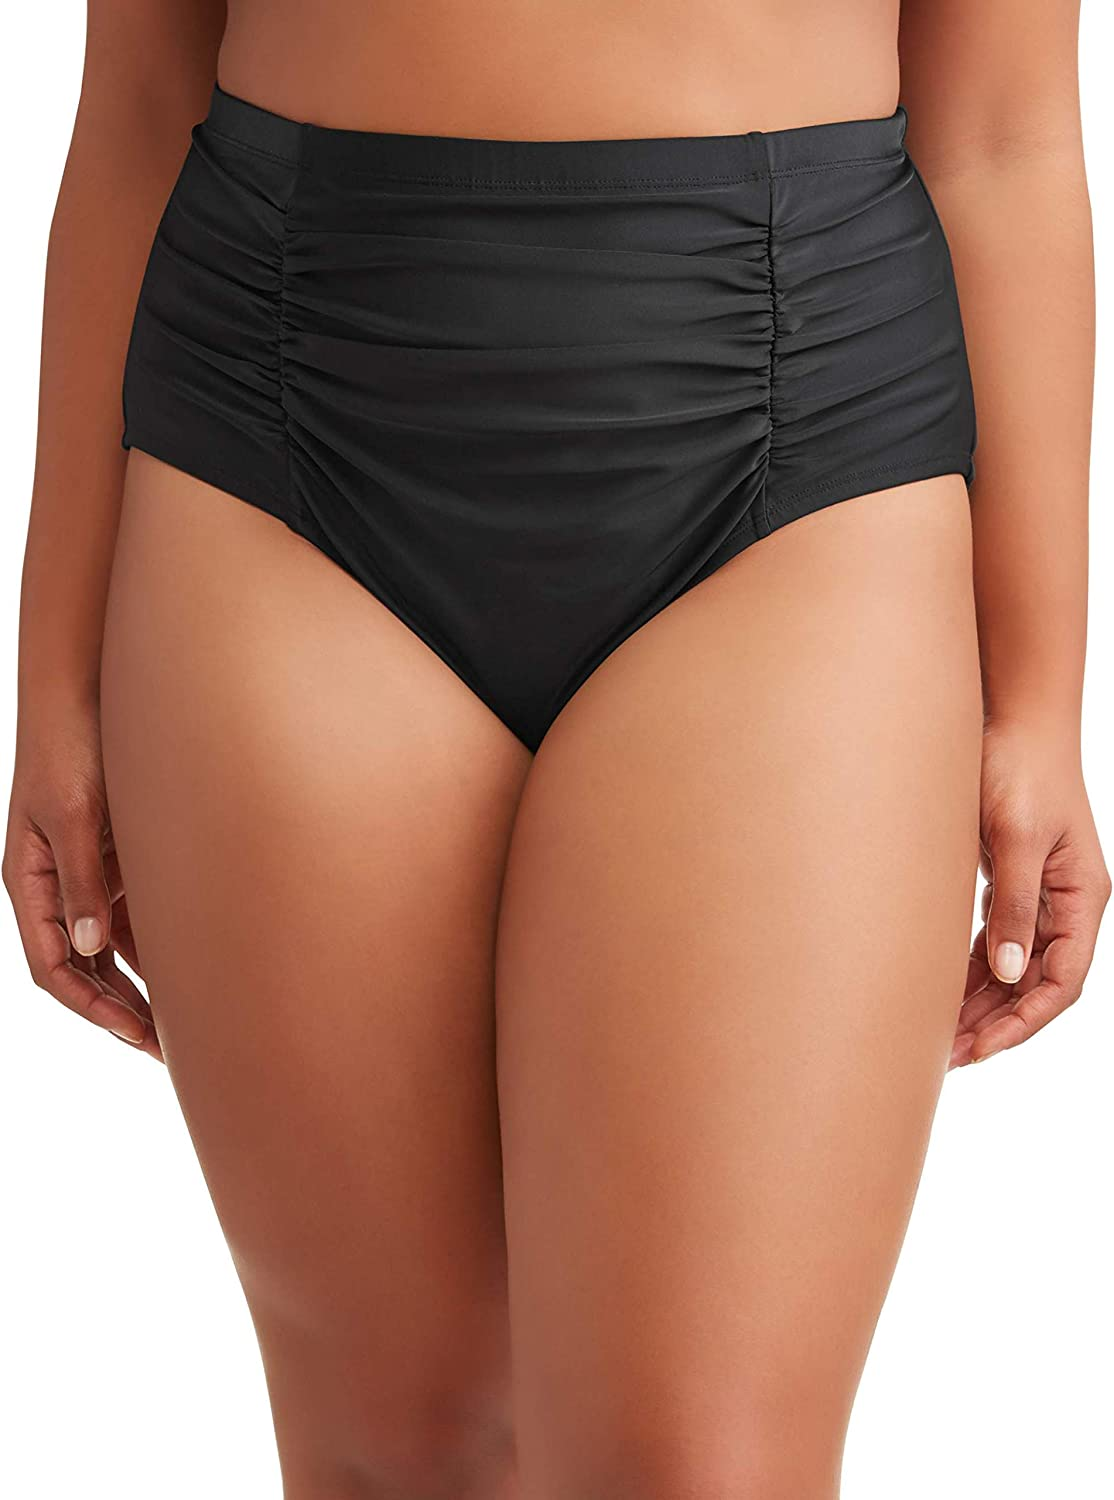 Terra & Sky Women's Plus Size Solid Black Ruched Swimsuit High Waist Bottom